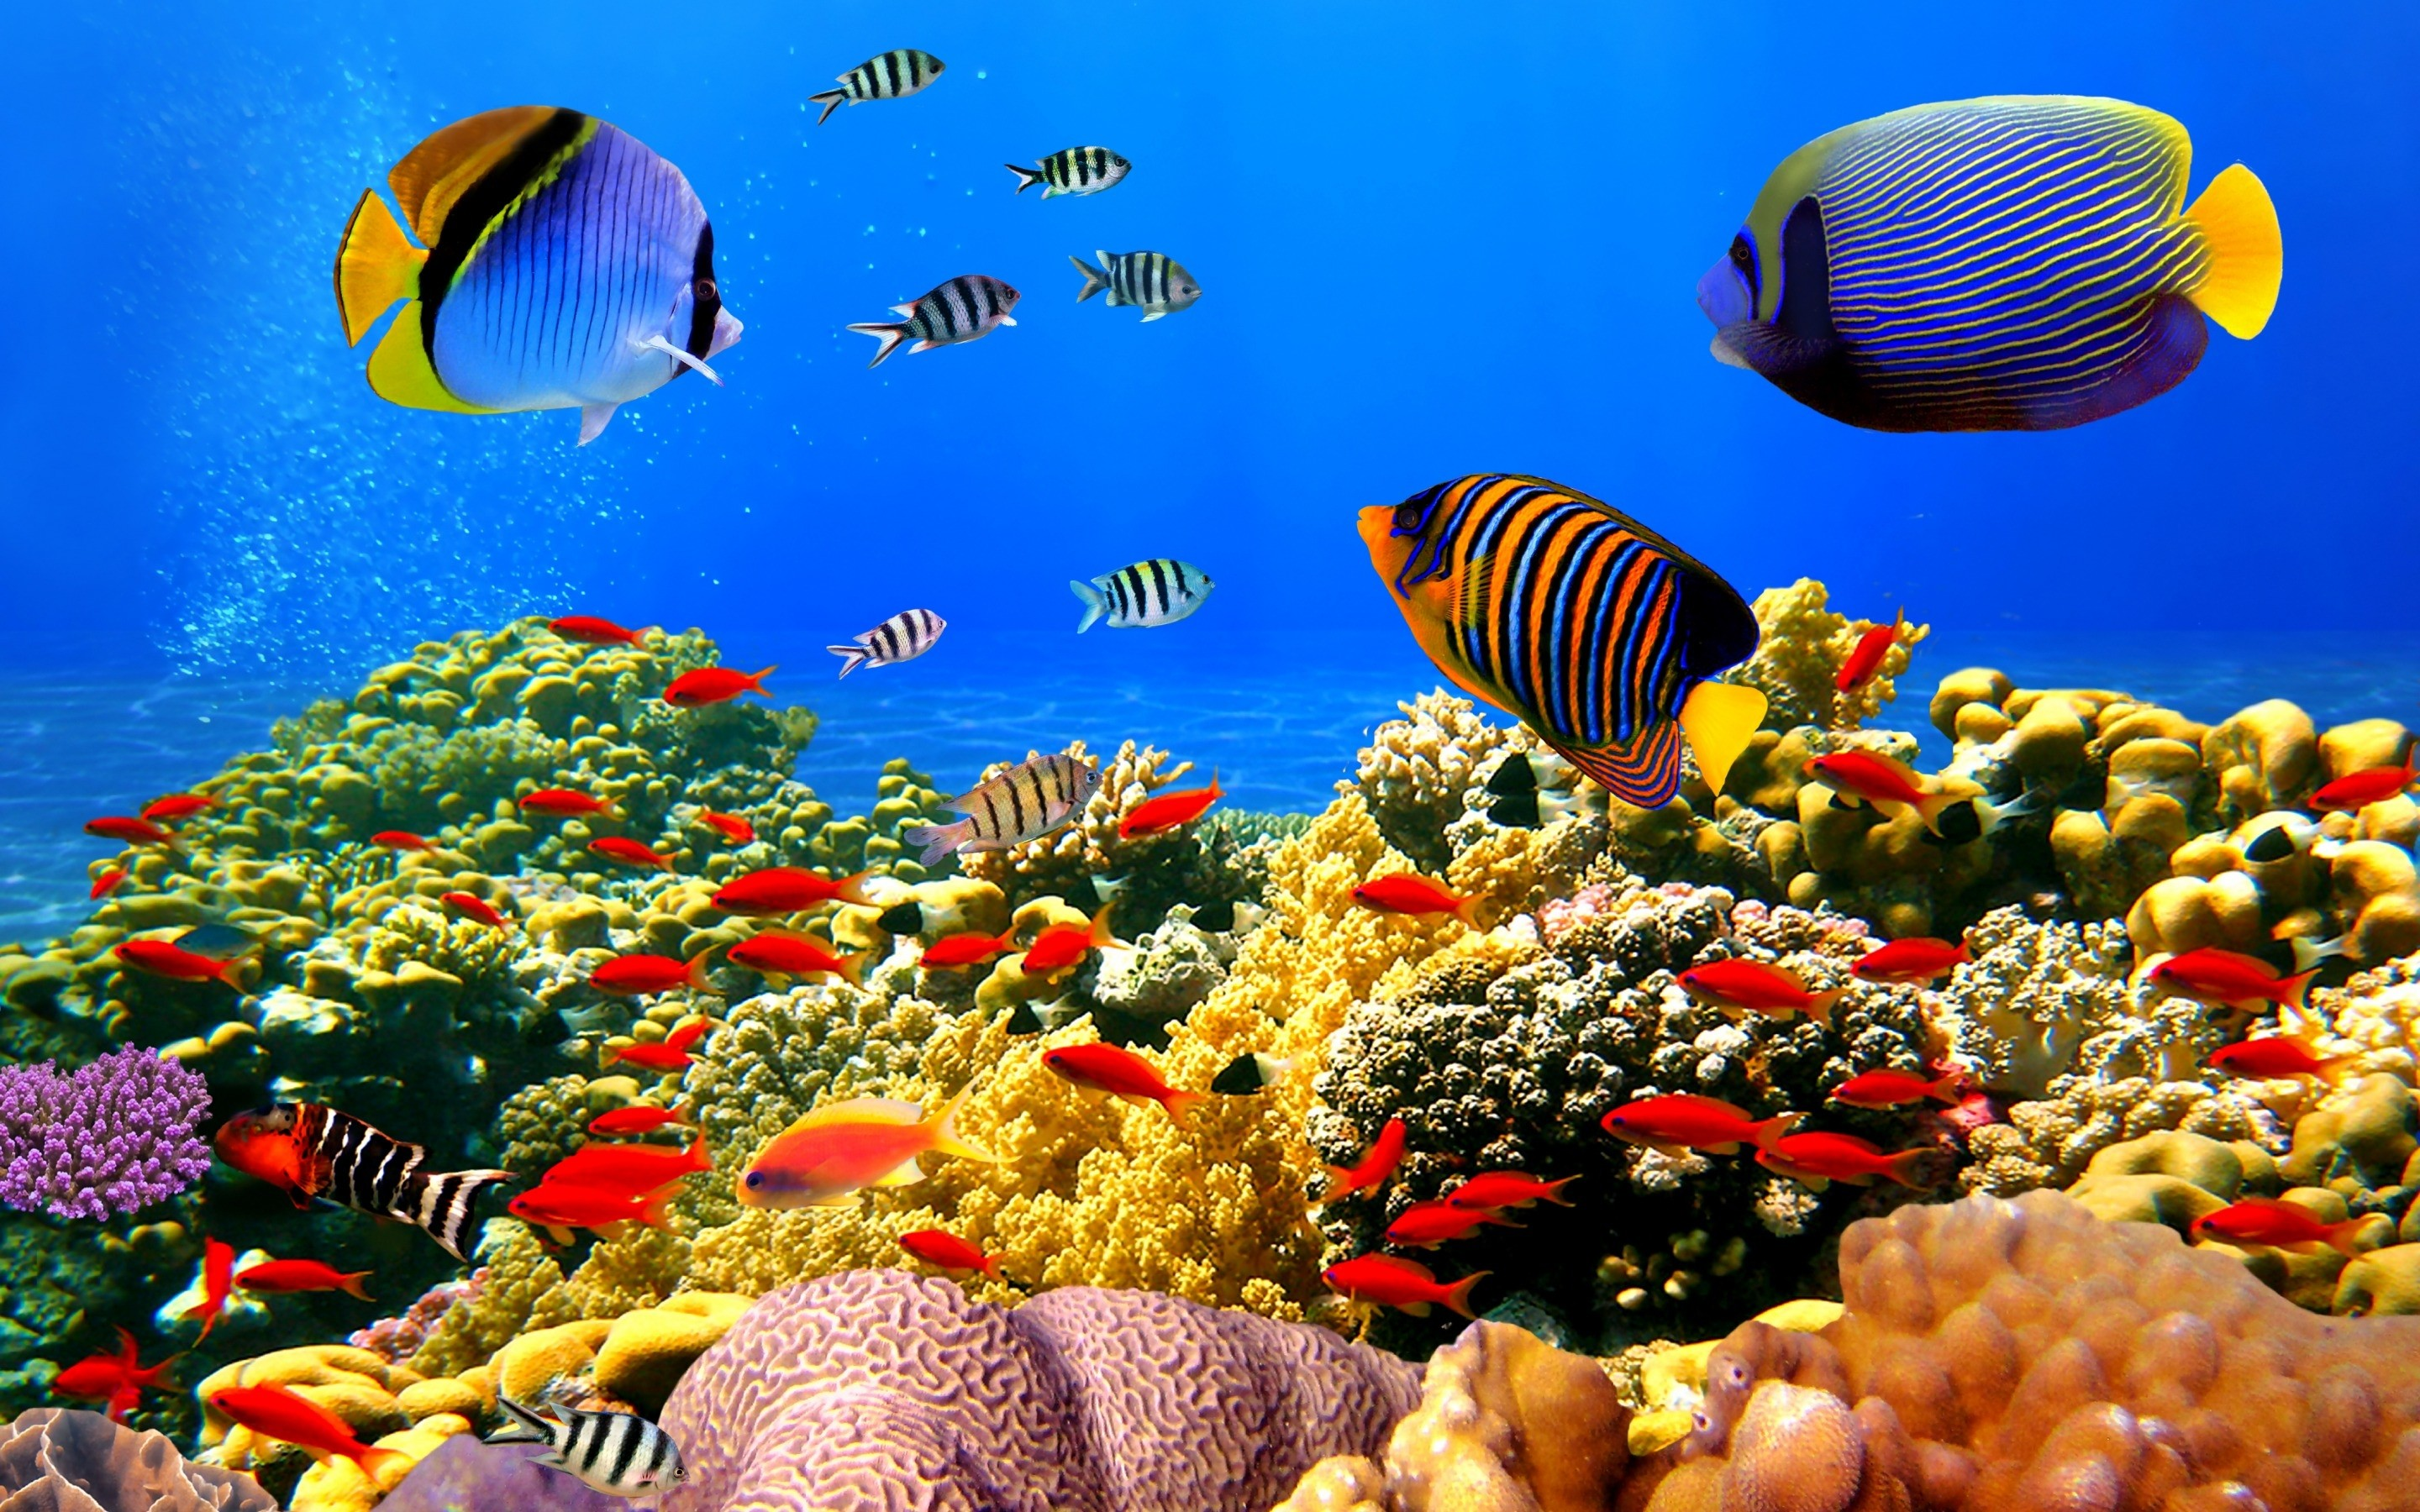 Awesome Scenes of Underwater Creature Wallpapers | Wallpapers 4k |  Pinterest | Underwater creatures and Wallpaper